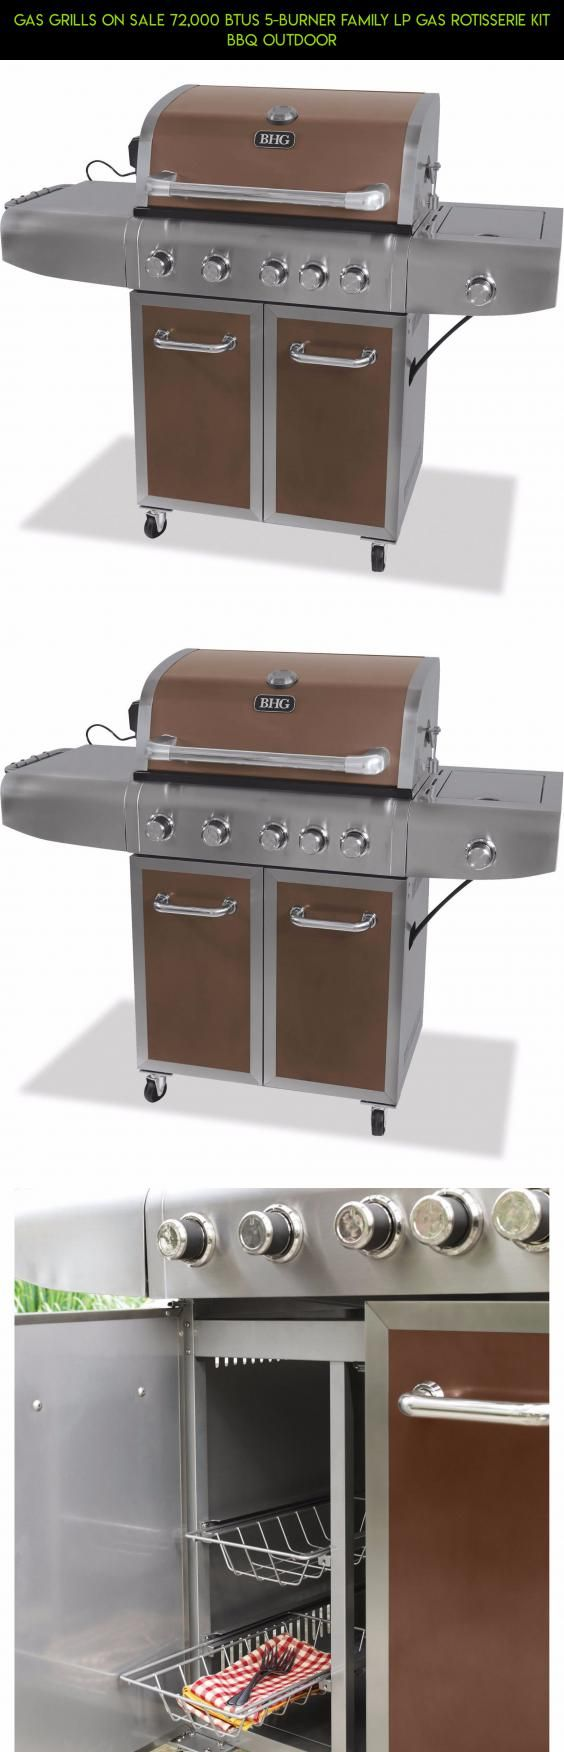 Gas Grills On Sale 72,000 BTUs 5-Burner Family LP Gas Rotisserie Kit BBQ Outdoor #products #camera #grills #tech #parts #drone #kit #racing #5 #technology #plans #fpv #shopping #gadgets #burner